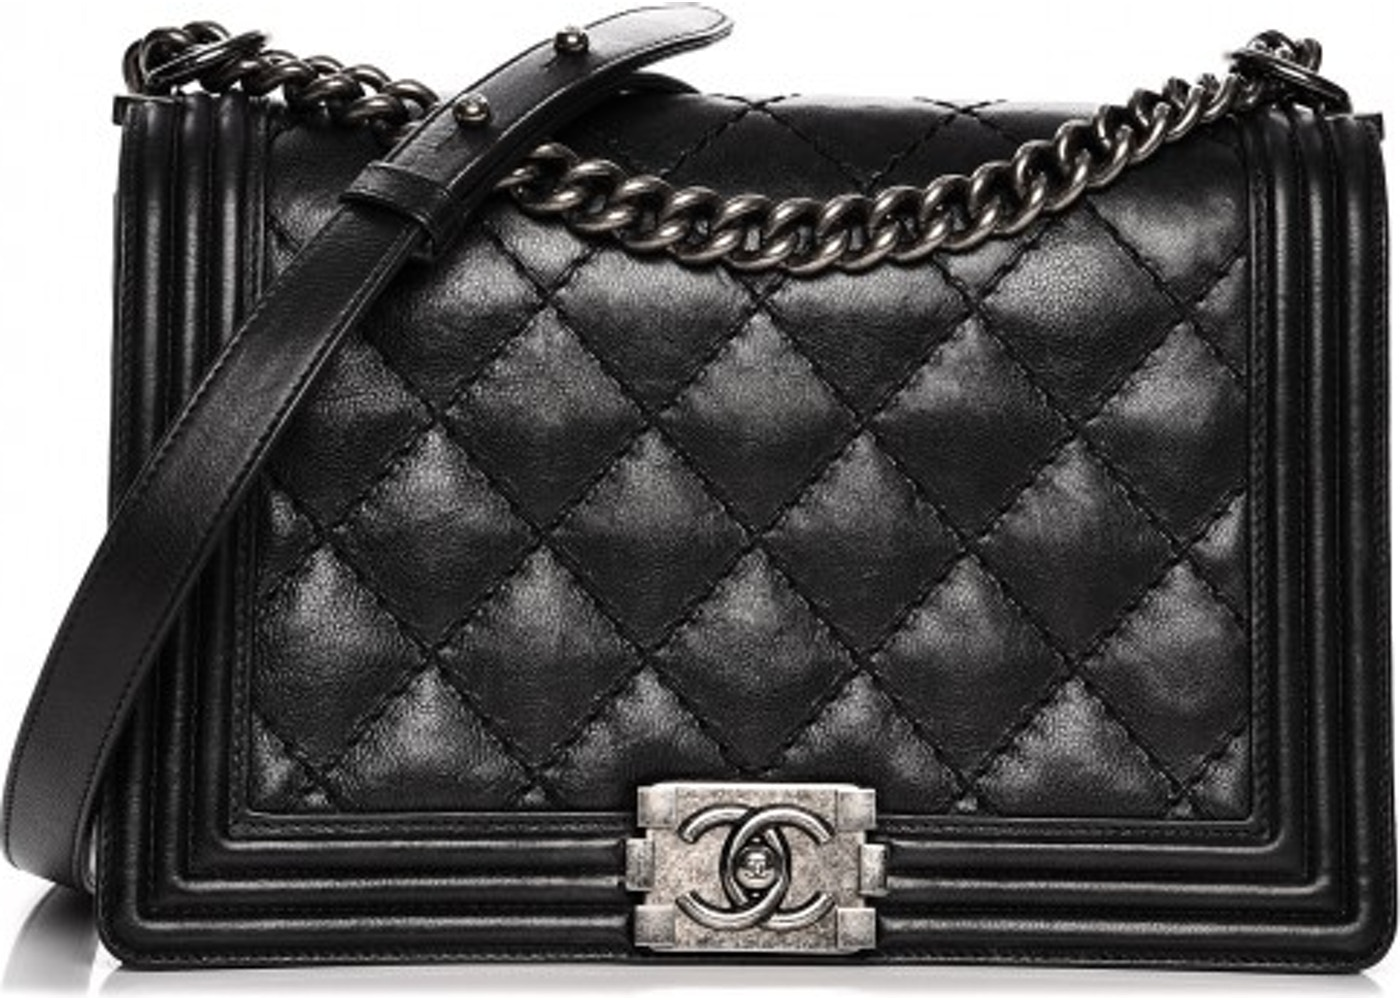 b98611af272898 Chanel Boy Flap New Medium Quilted Double Stitched Calfskin Black. New  Medium Quilted Double Stitched Calfskin Black